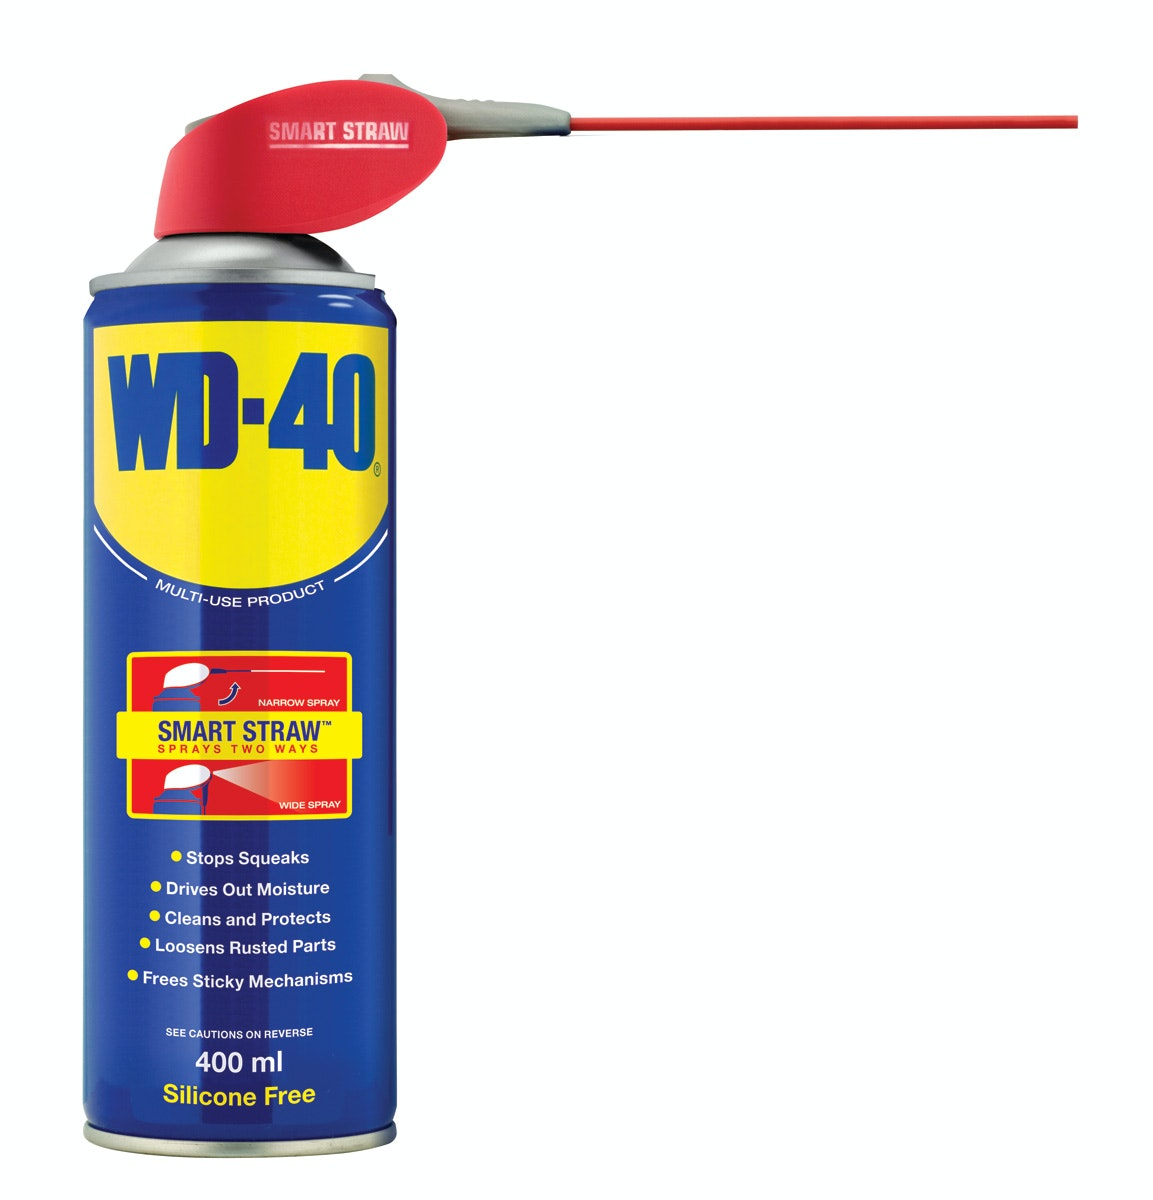 Win WD-40 Specialist Care Kit sweepstakes